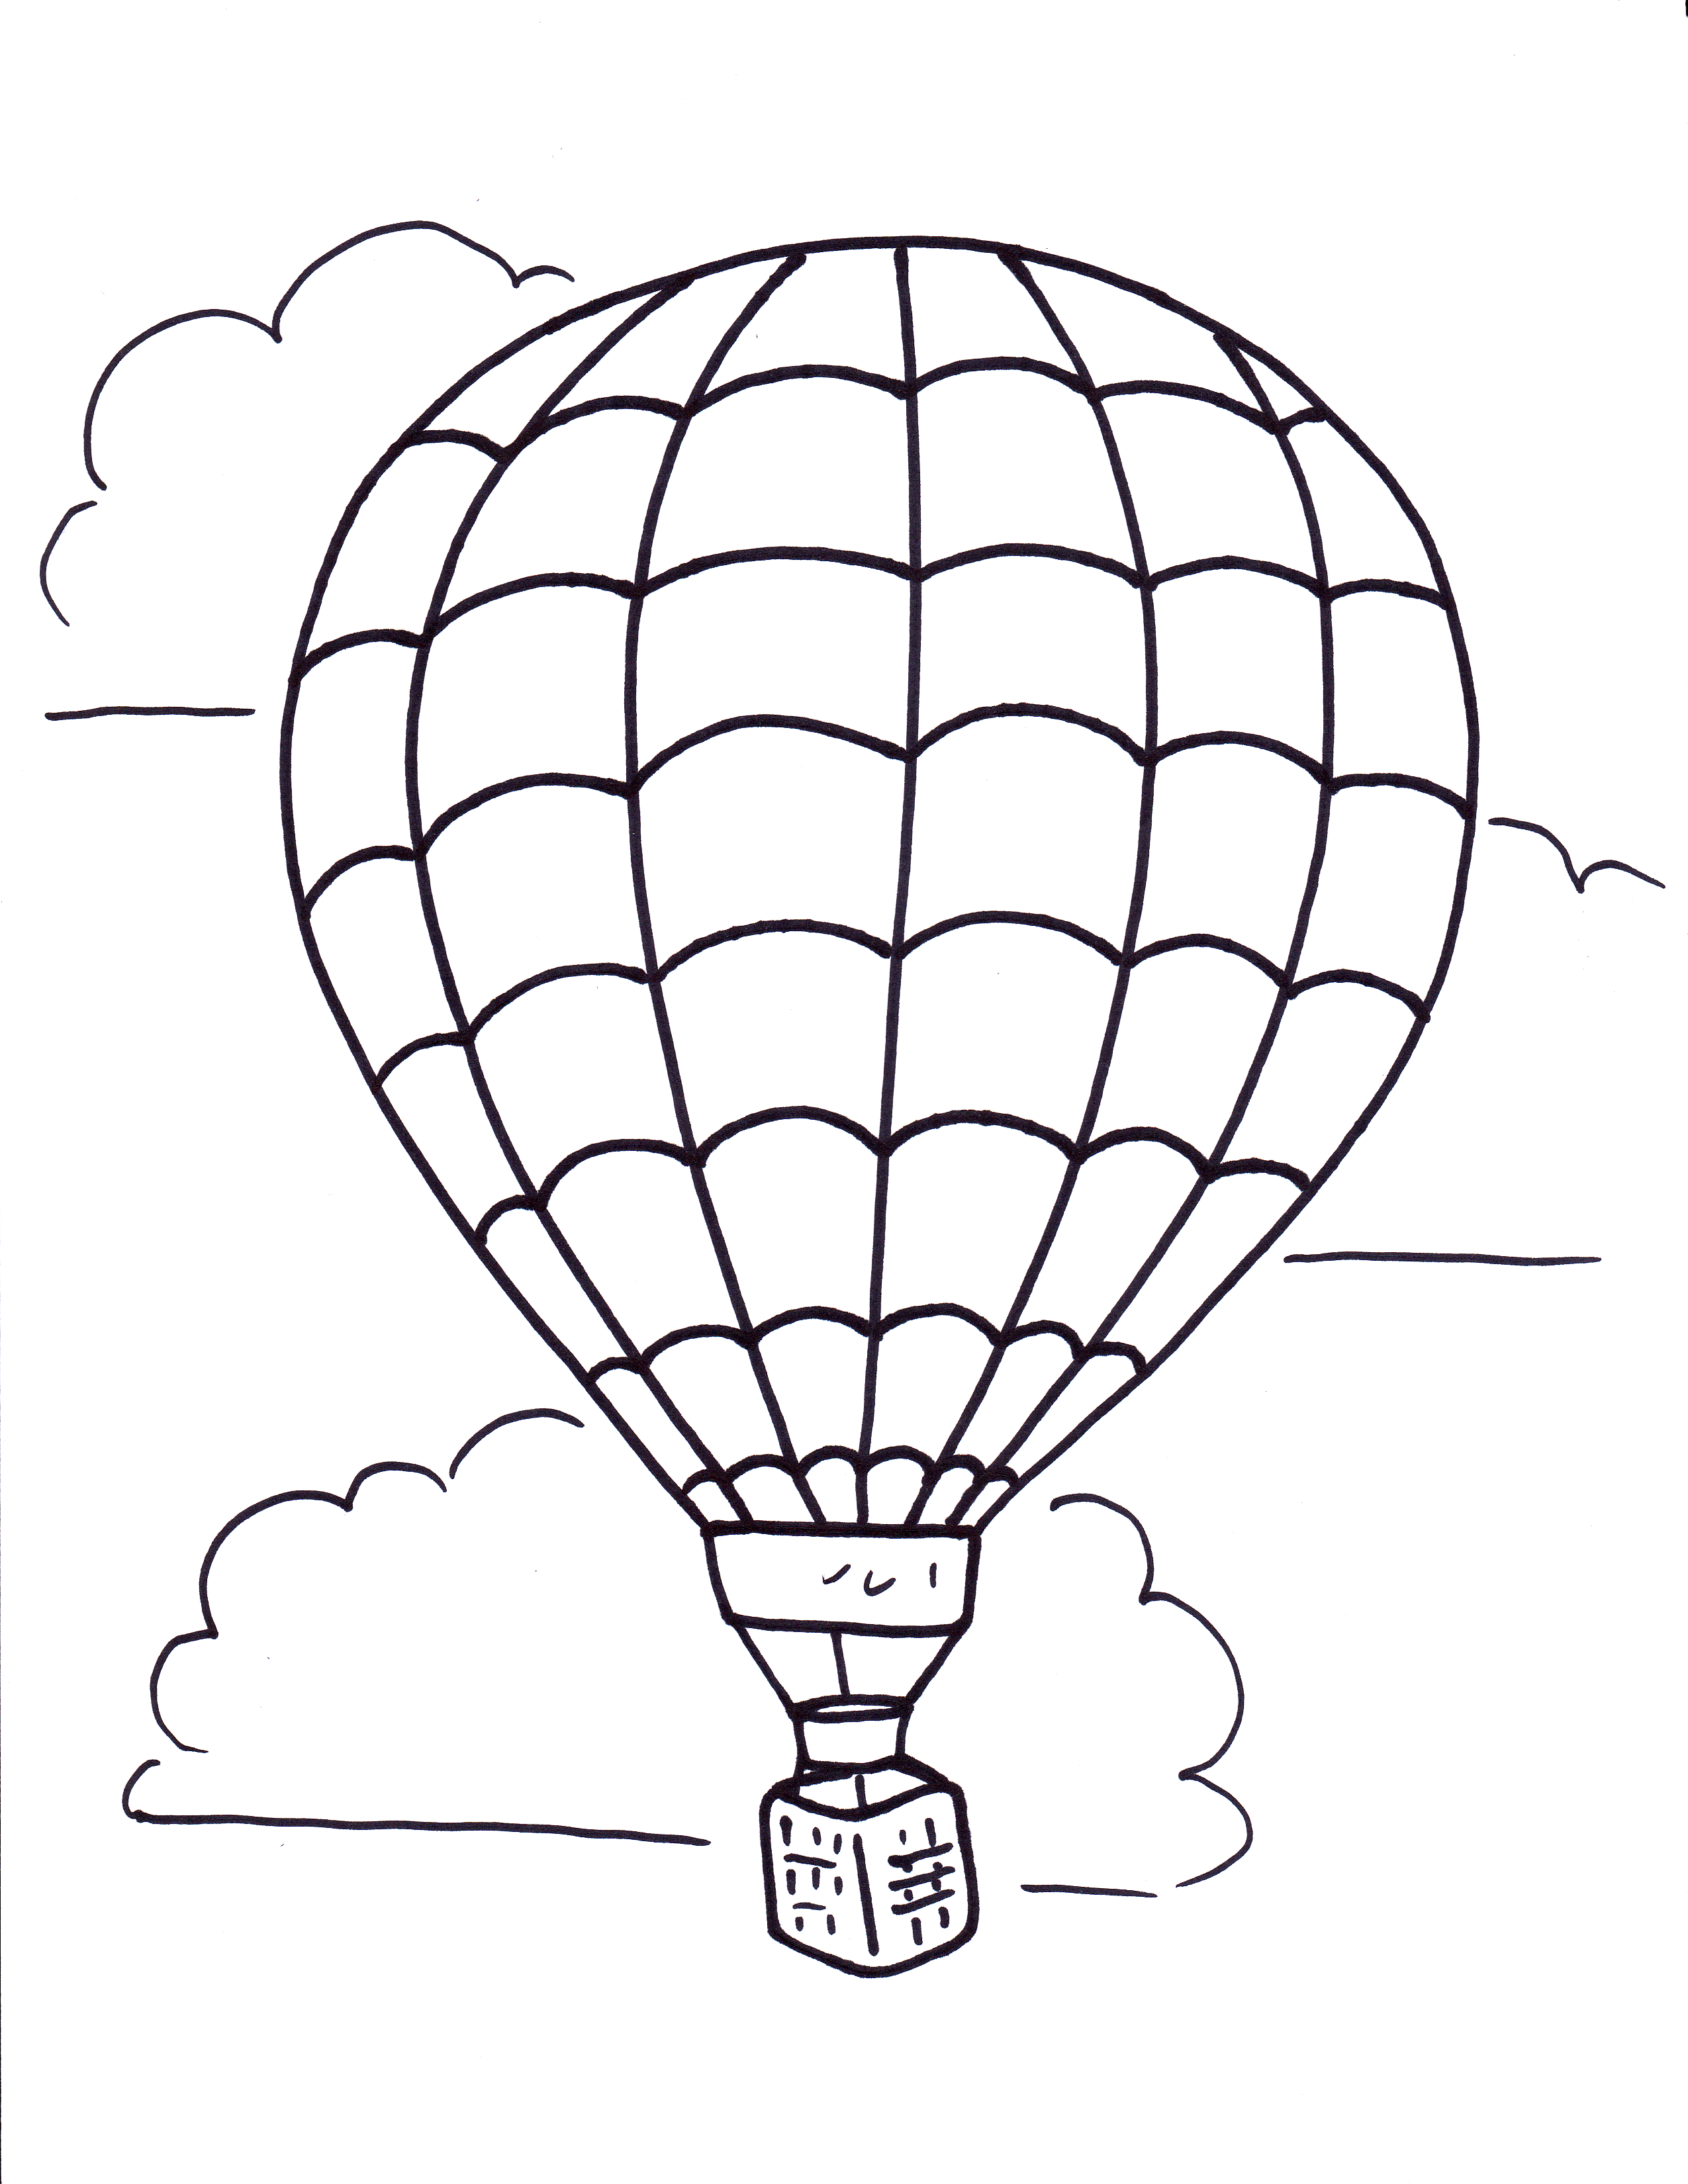 Hot Air Balloon Coloring Pages Free Large Images Hot Air Balloon Drawing Air Balloon Balloon Template